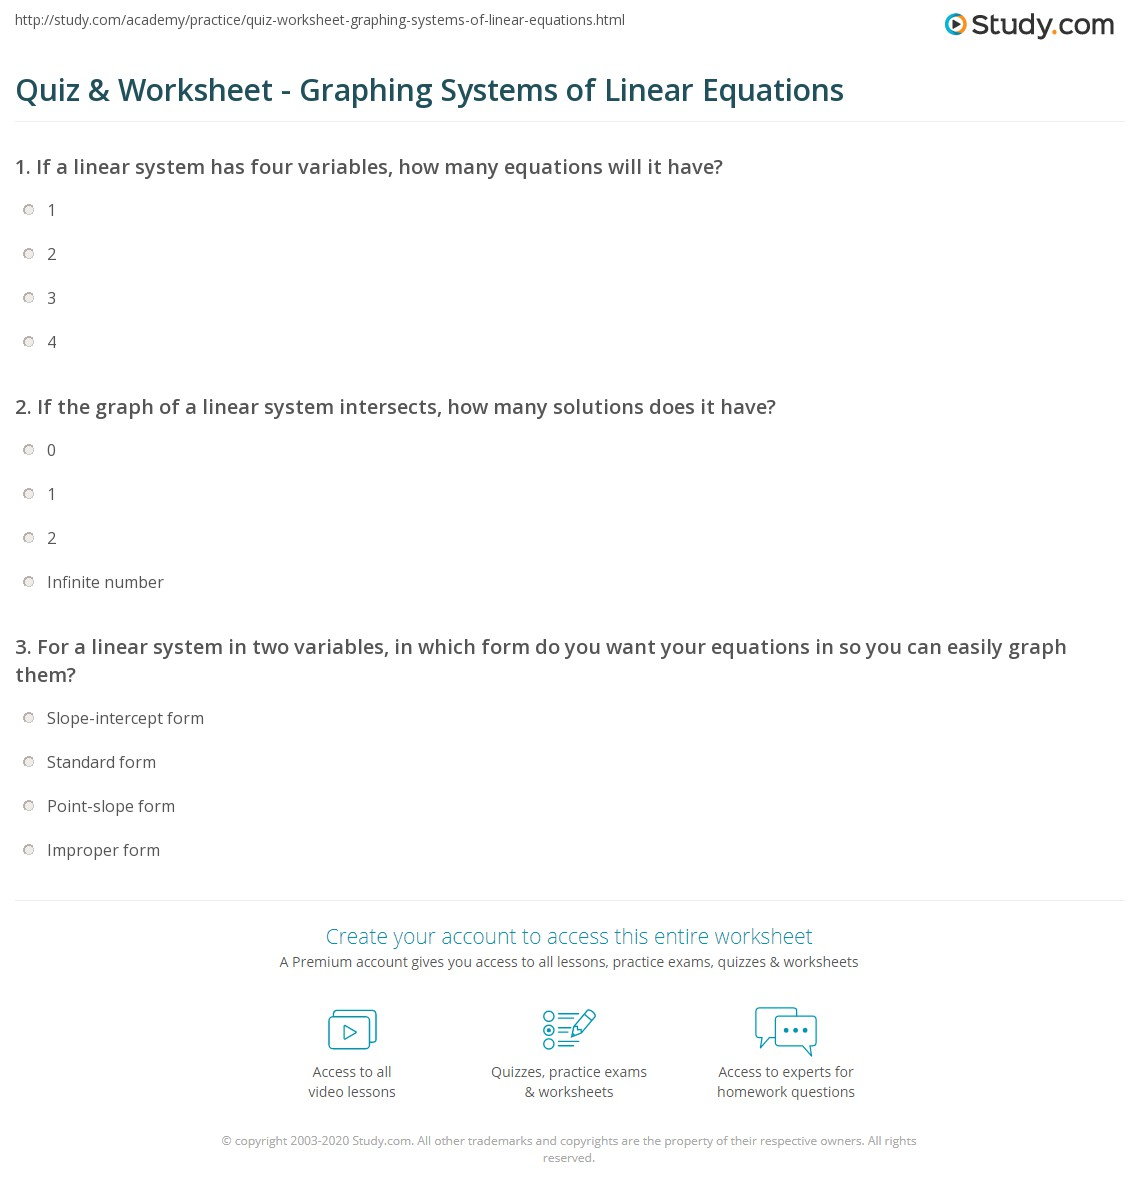 quiz & worksheet - graphing systems of linear equations | study